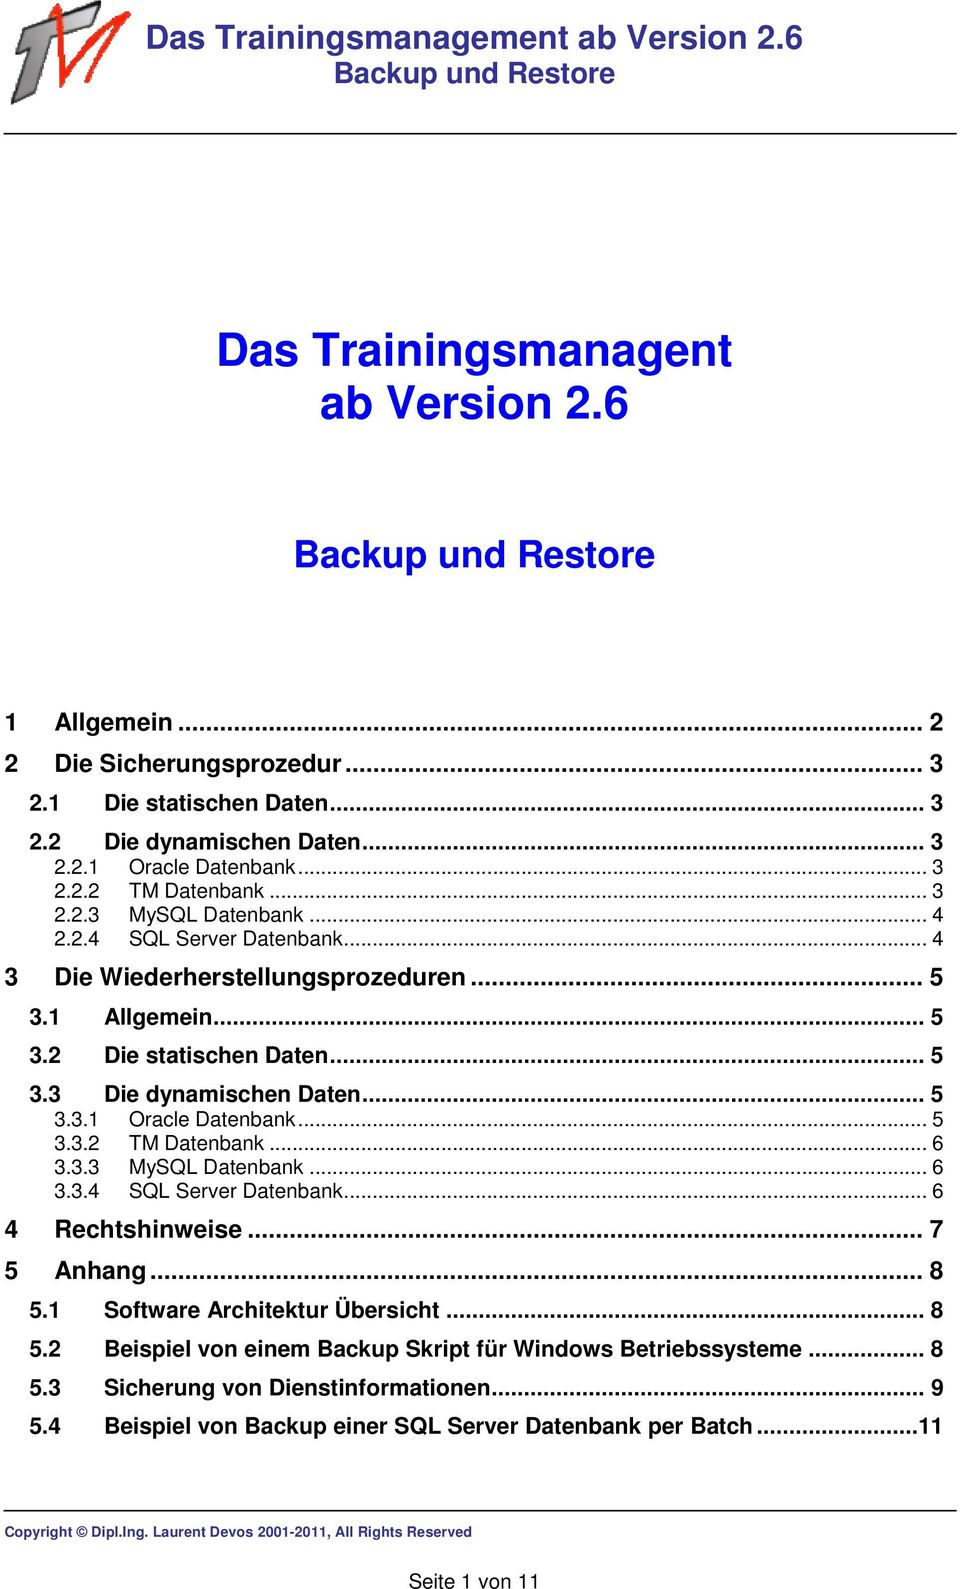 .. 5 3.3.2 TM Datenbank... 6 3.3.3 MySQL Datenbank... 6 3.3.4 SQL Server Datenbank... 6 4 Rechtshinweise... 7 5 Anhang... 8 5.1 Software Architektur Übersicht... 8 5.2 Beispiel von einem Backup Skript für Windows Betriebssysteme.